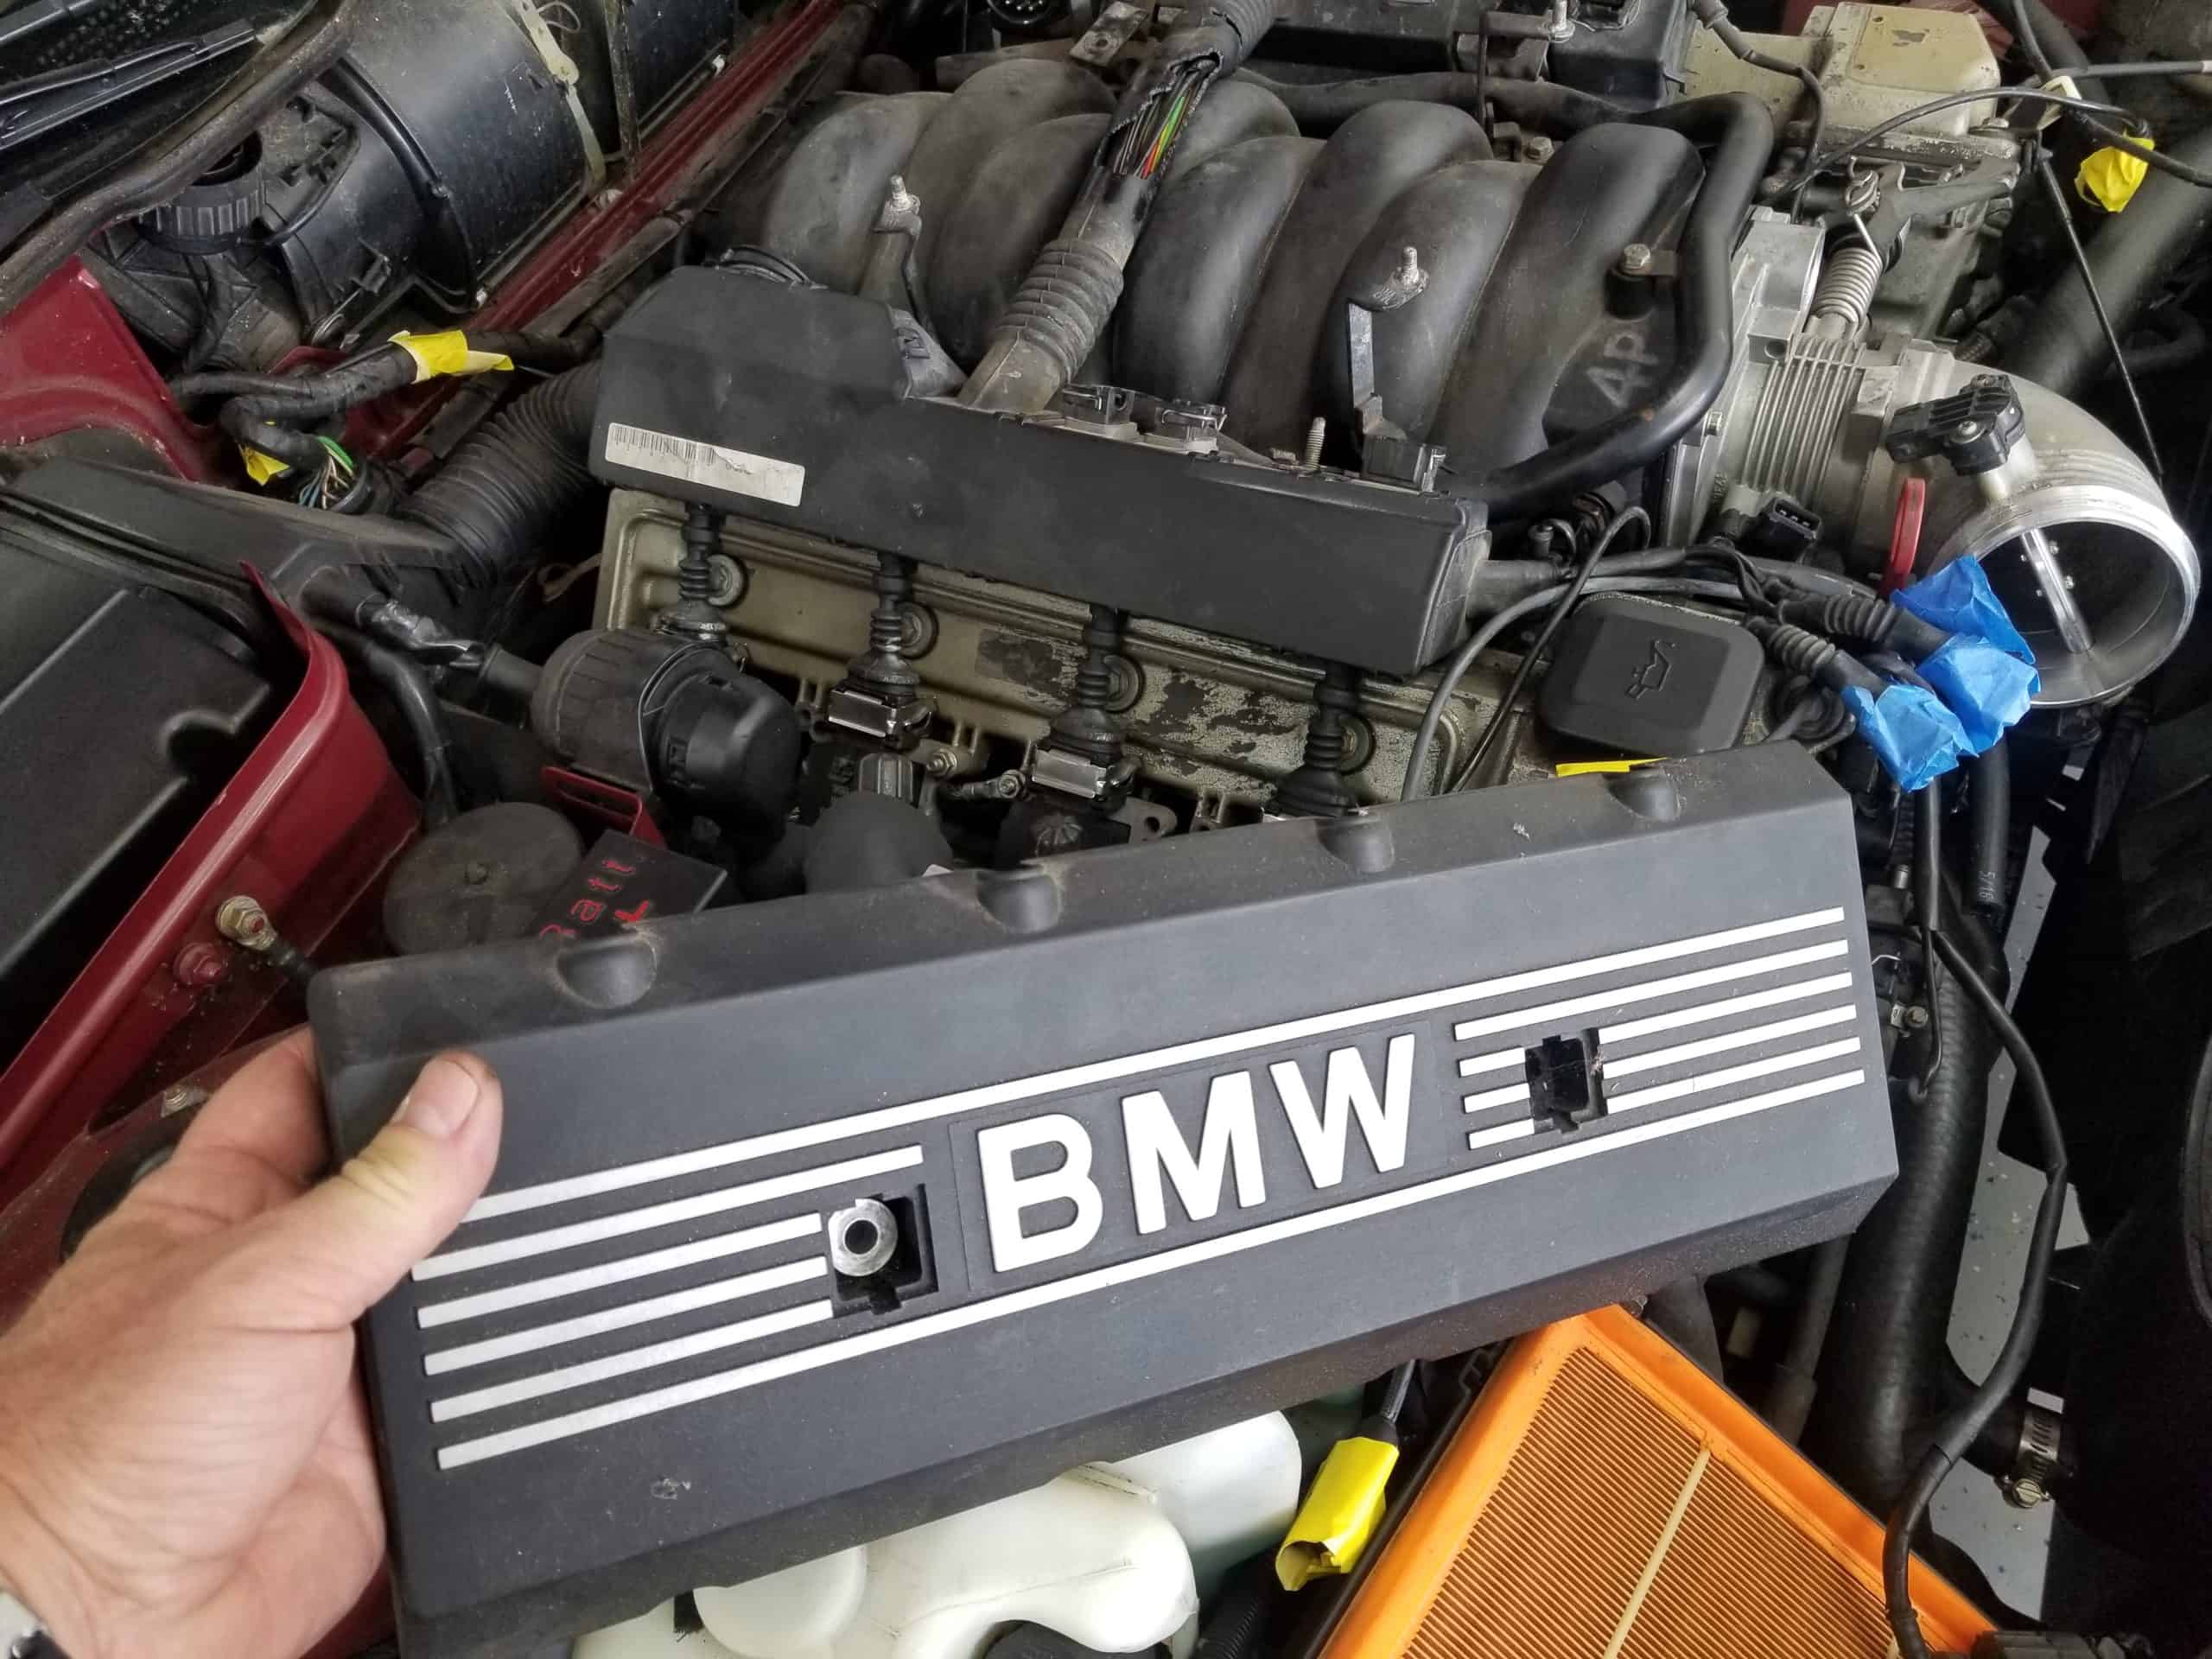 bmw m60 pcv valve replacement - Remove the side engine covers